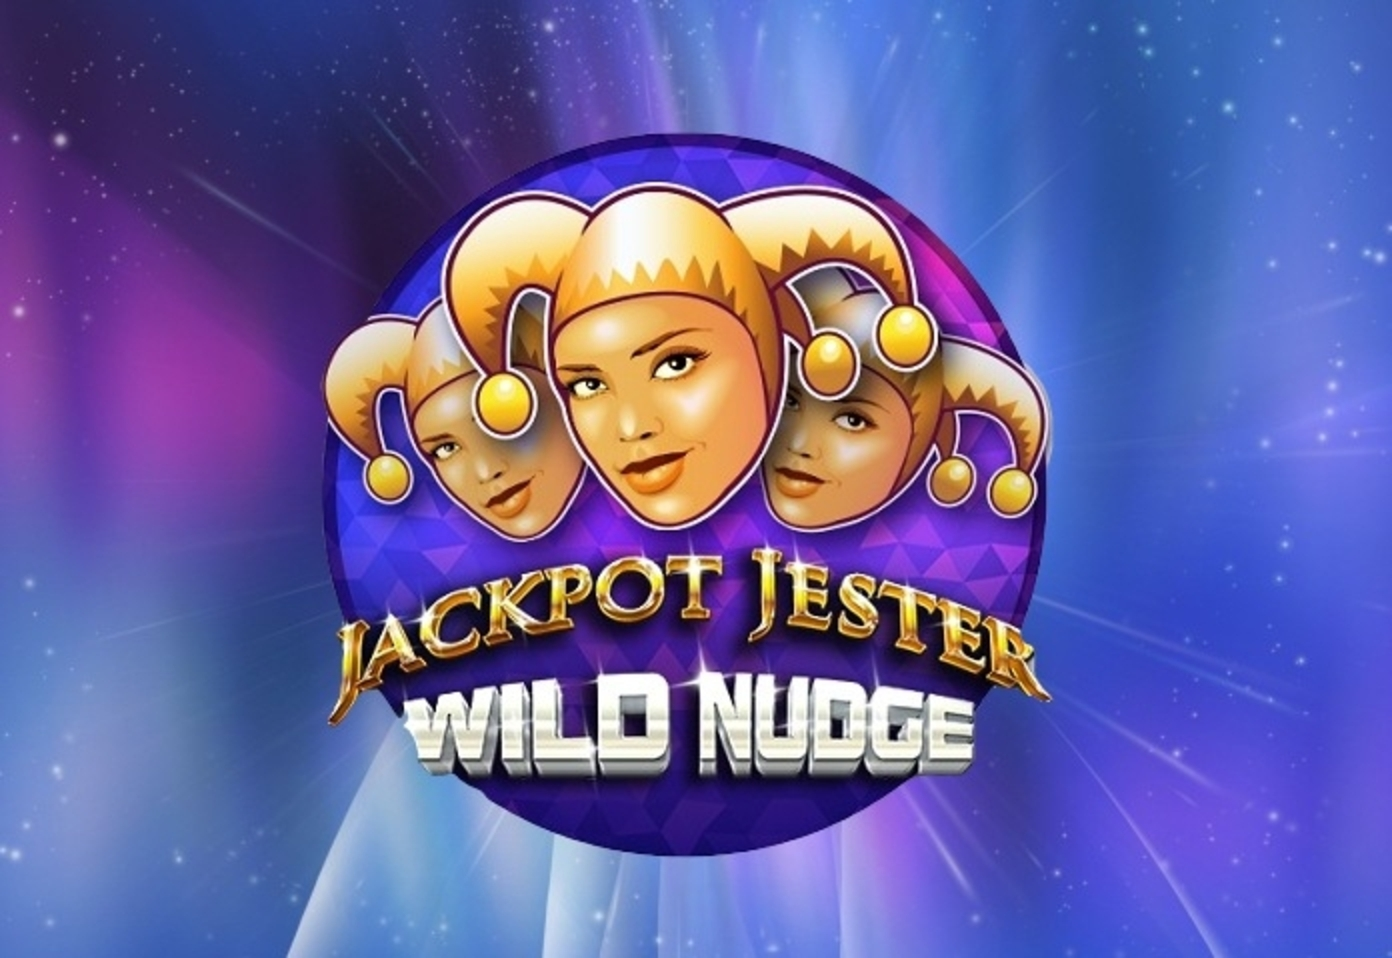 Jackpot Jester Wild Nudge Online Slot Demo Game by NextGen Gaming